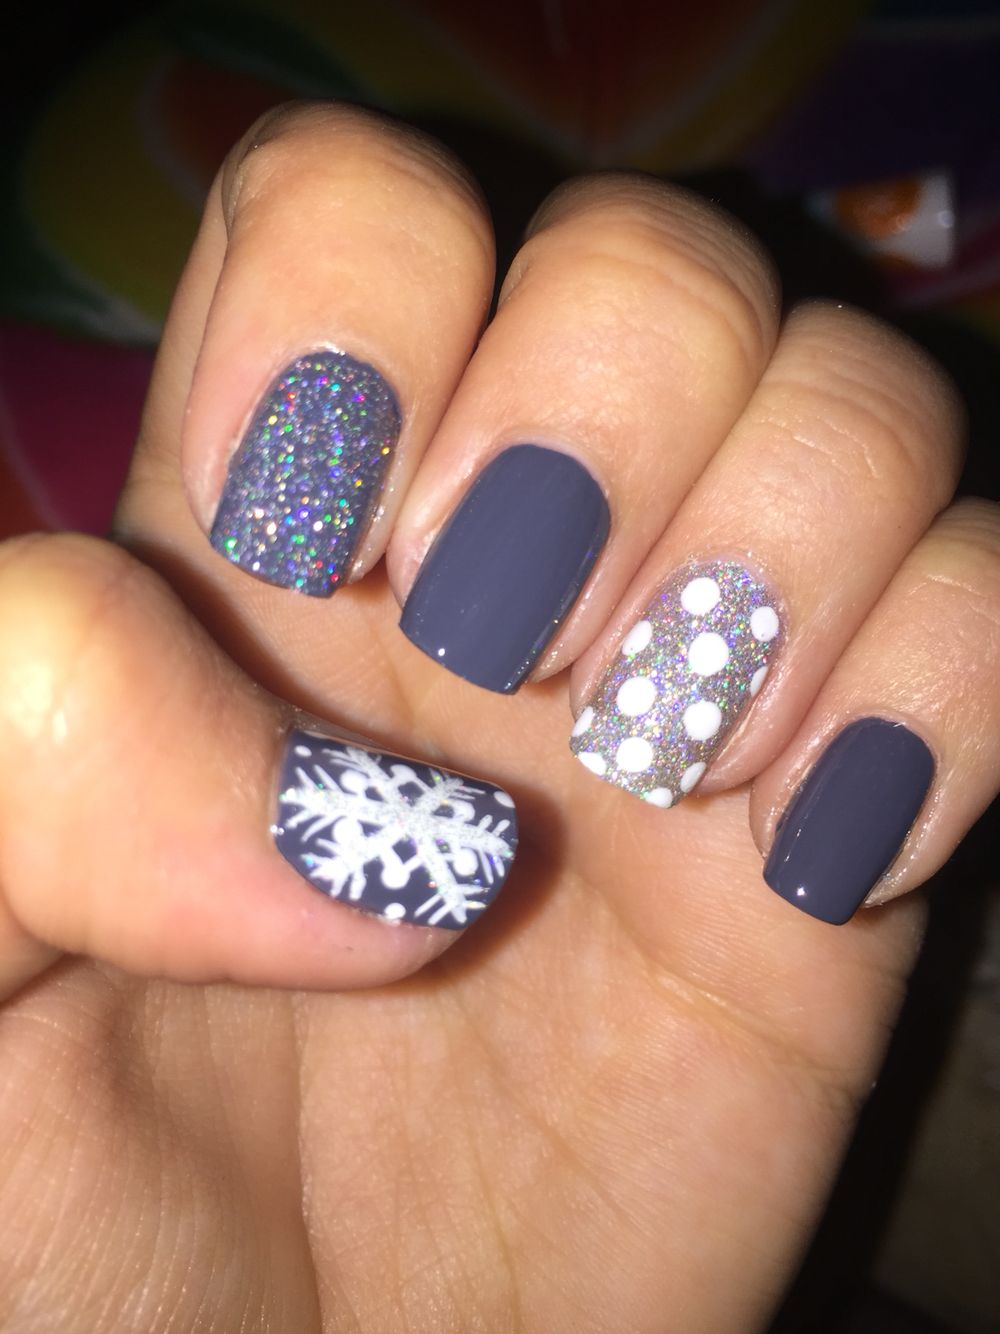 Christmas gel nails. Done by yours truly ️ Nail designs